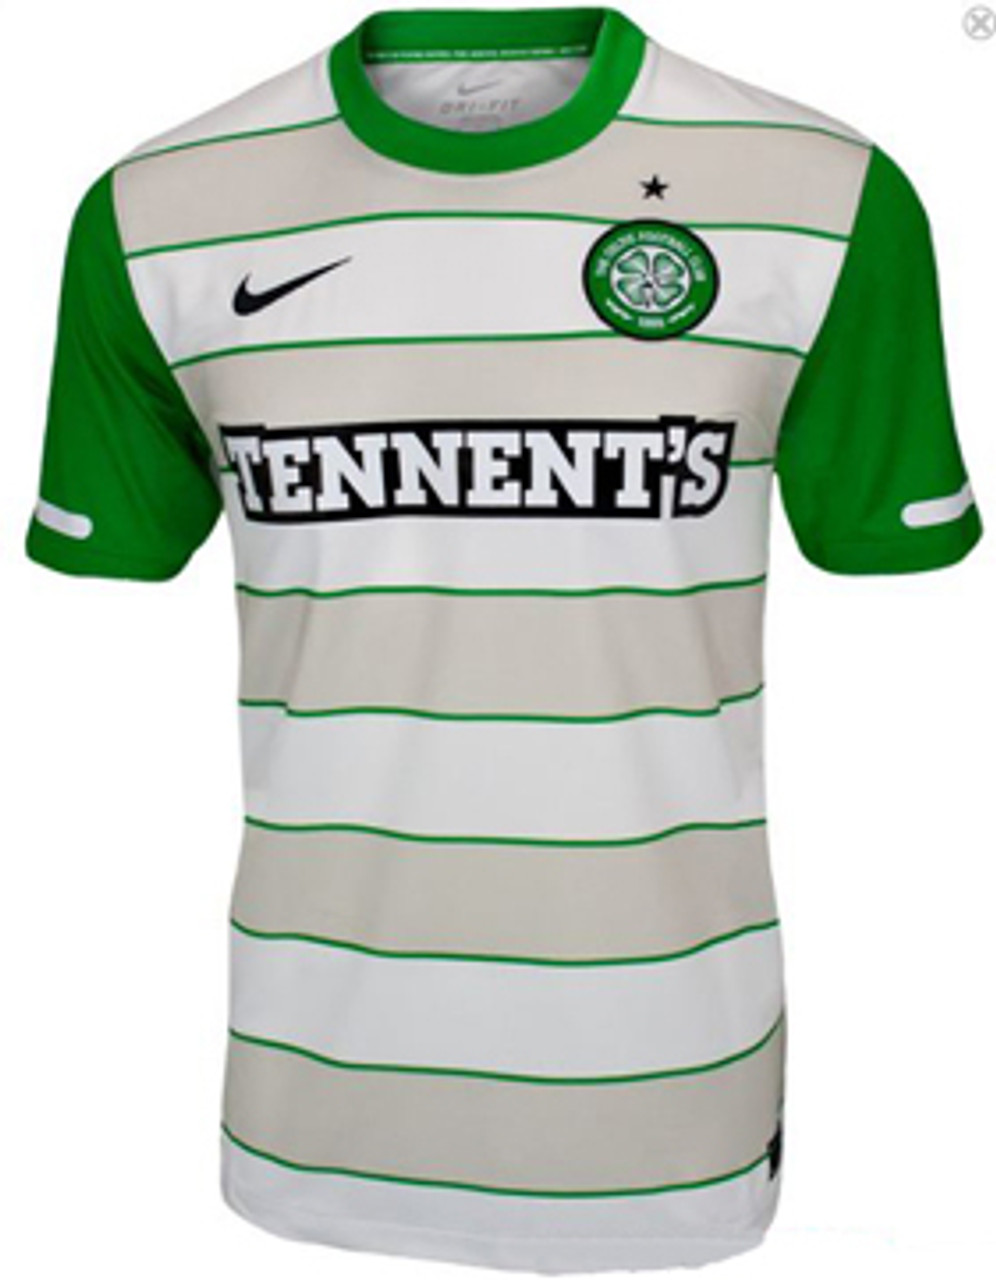 hot sale online 4b2b2 0724b NIKE CELTIC 2012 AWAY JERSEY white